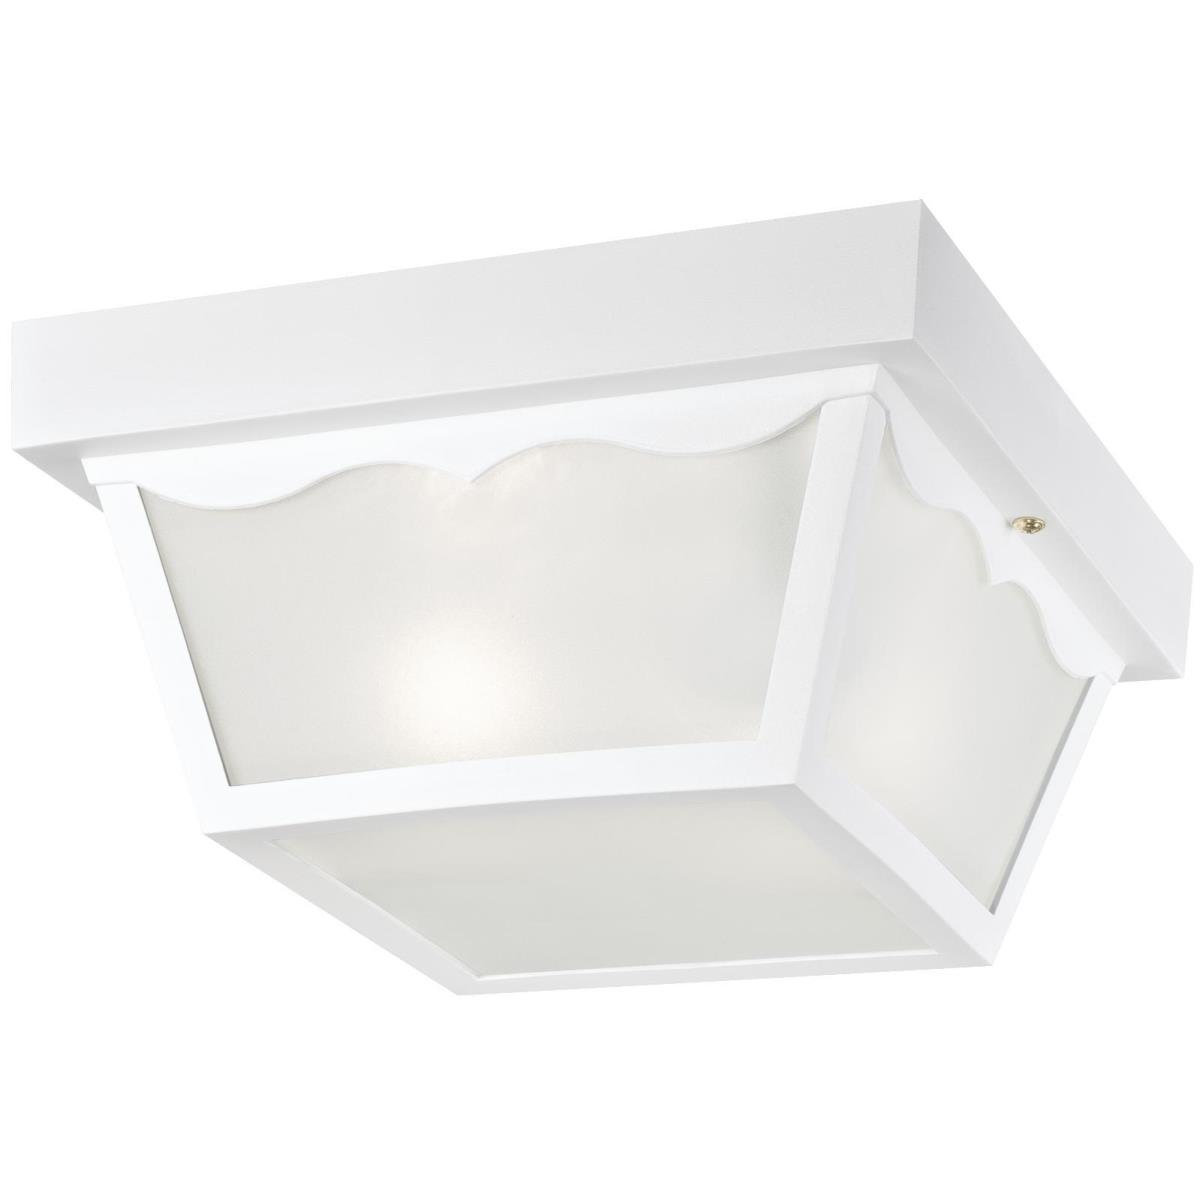 2 Light Hi-Impact Polypropylene Flush White Finish with Clear Textured Glass